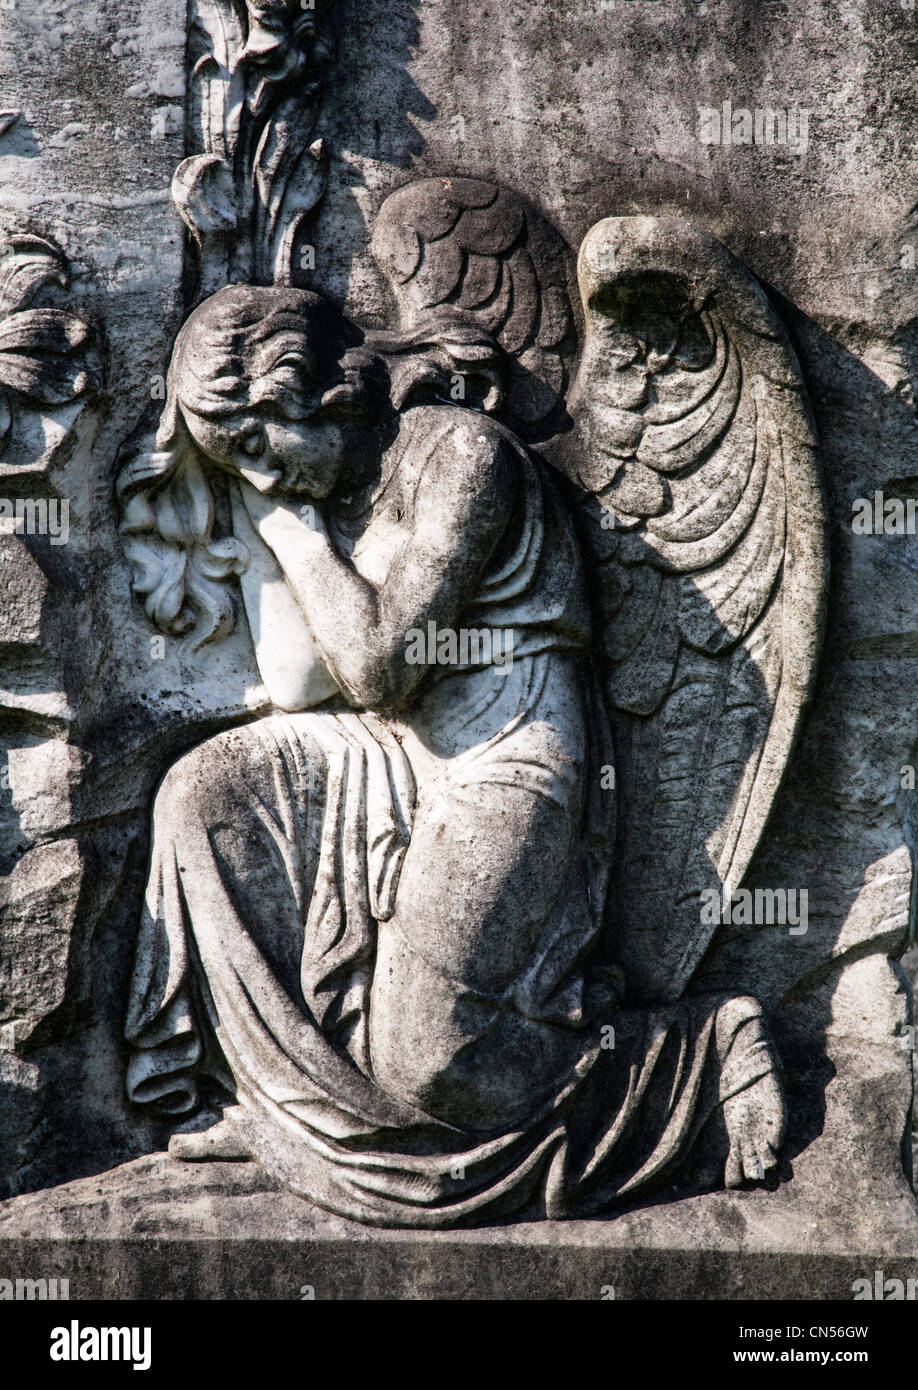 Carving of a sleeping angel on an old tombstone. - Stock Image